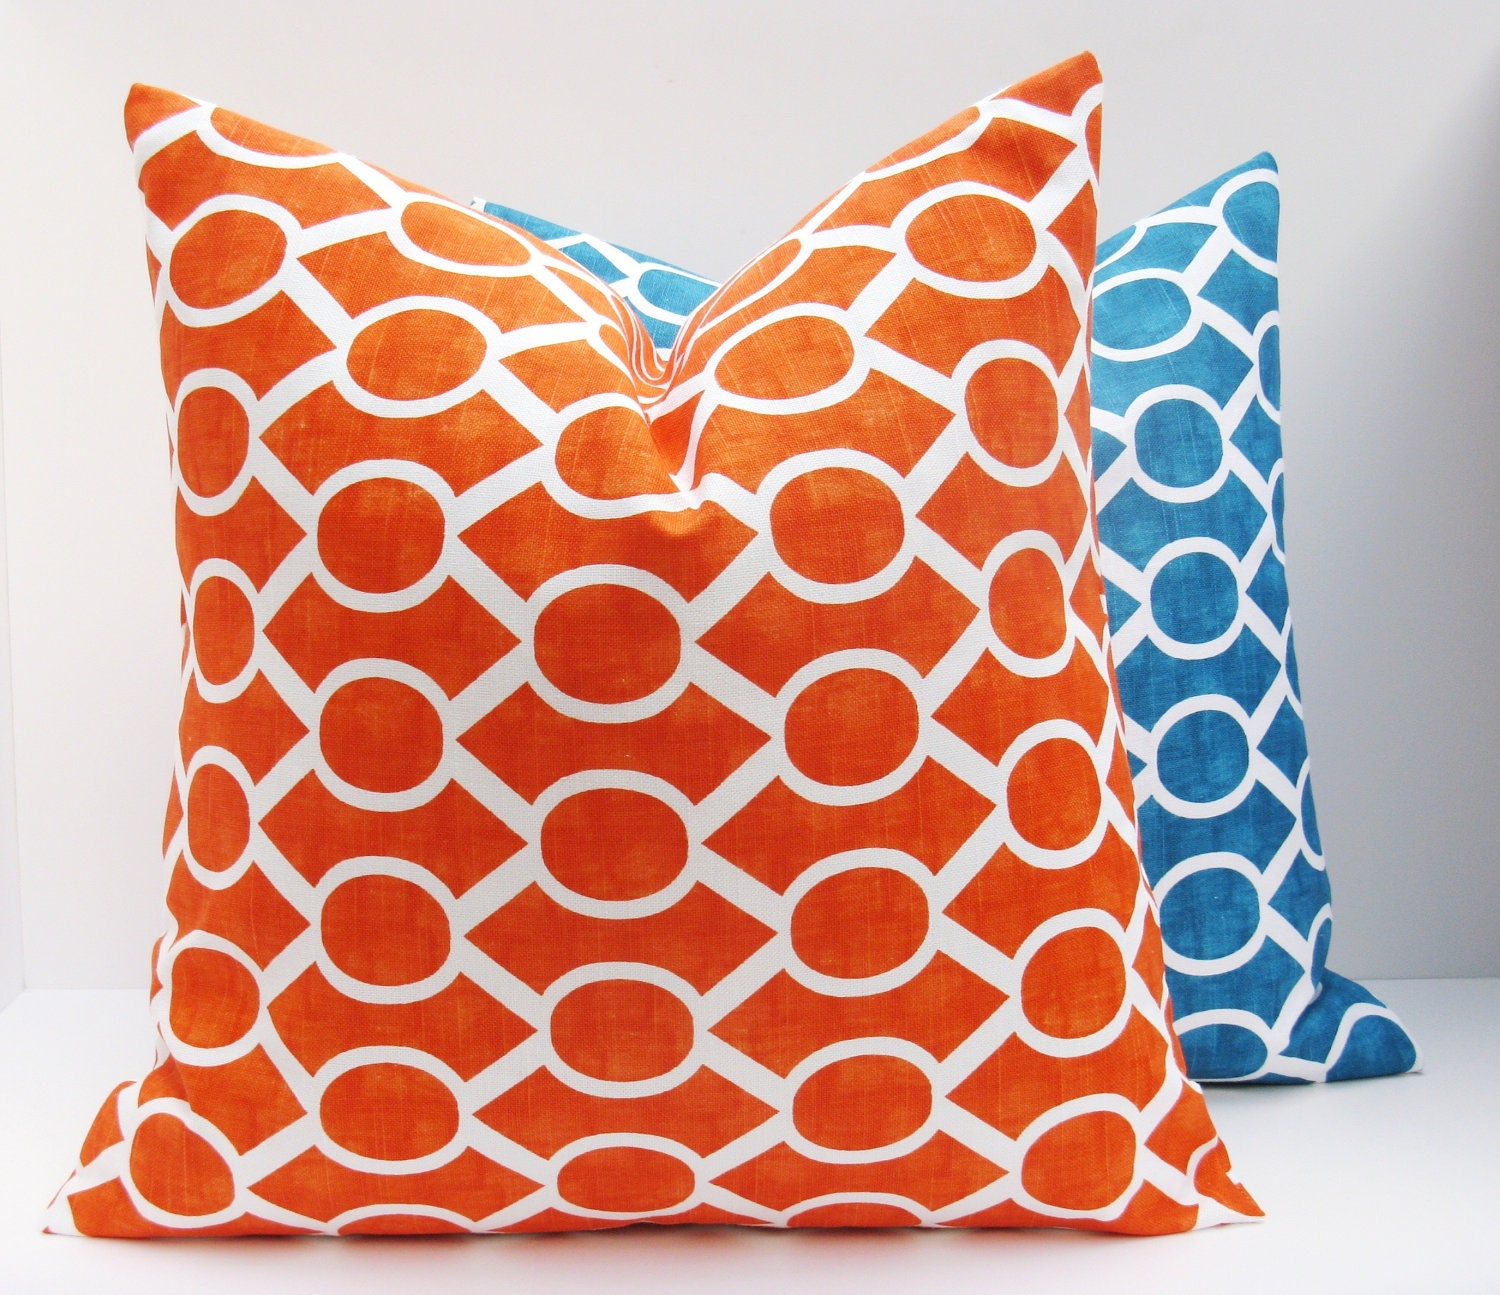 Orange Decorative Pillows Couch : Decorative Throw Pillows Covers .Orange Pillow by EastAndNest